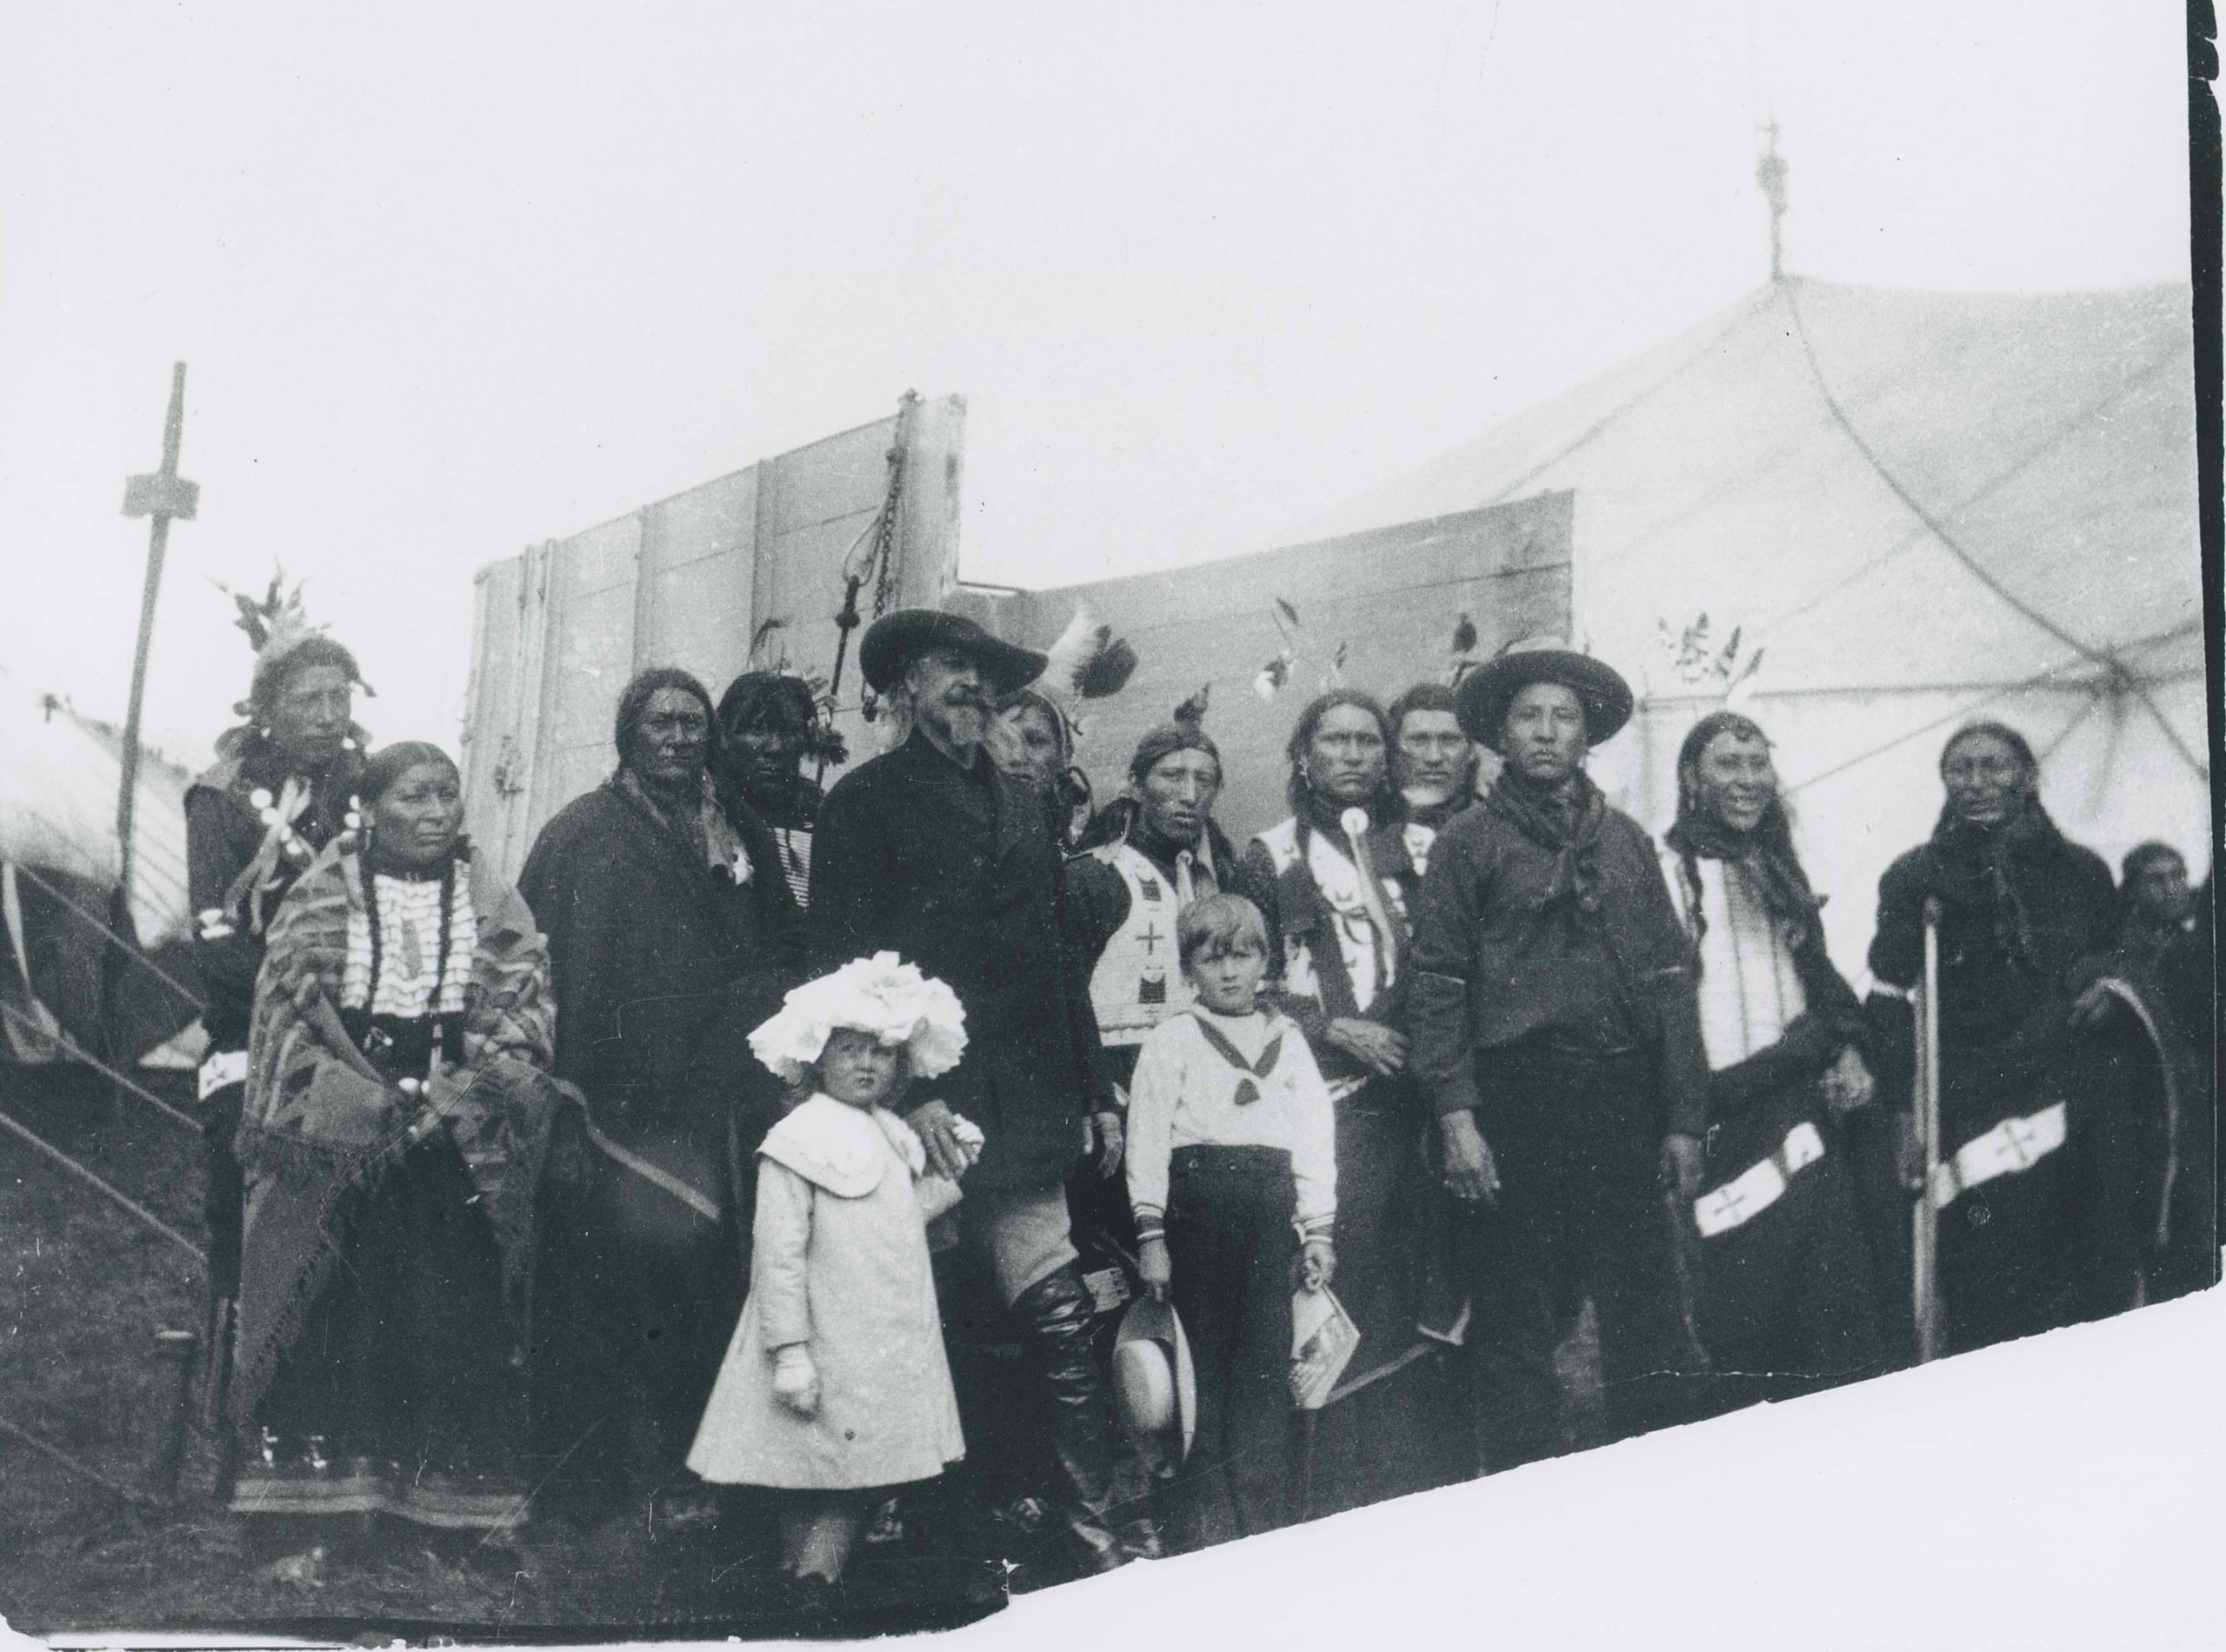 Photograph of a group of people.